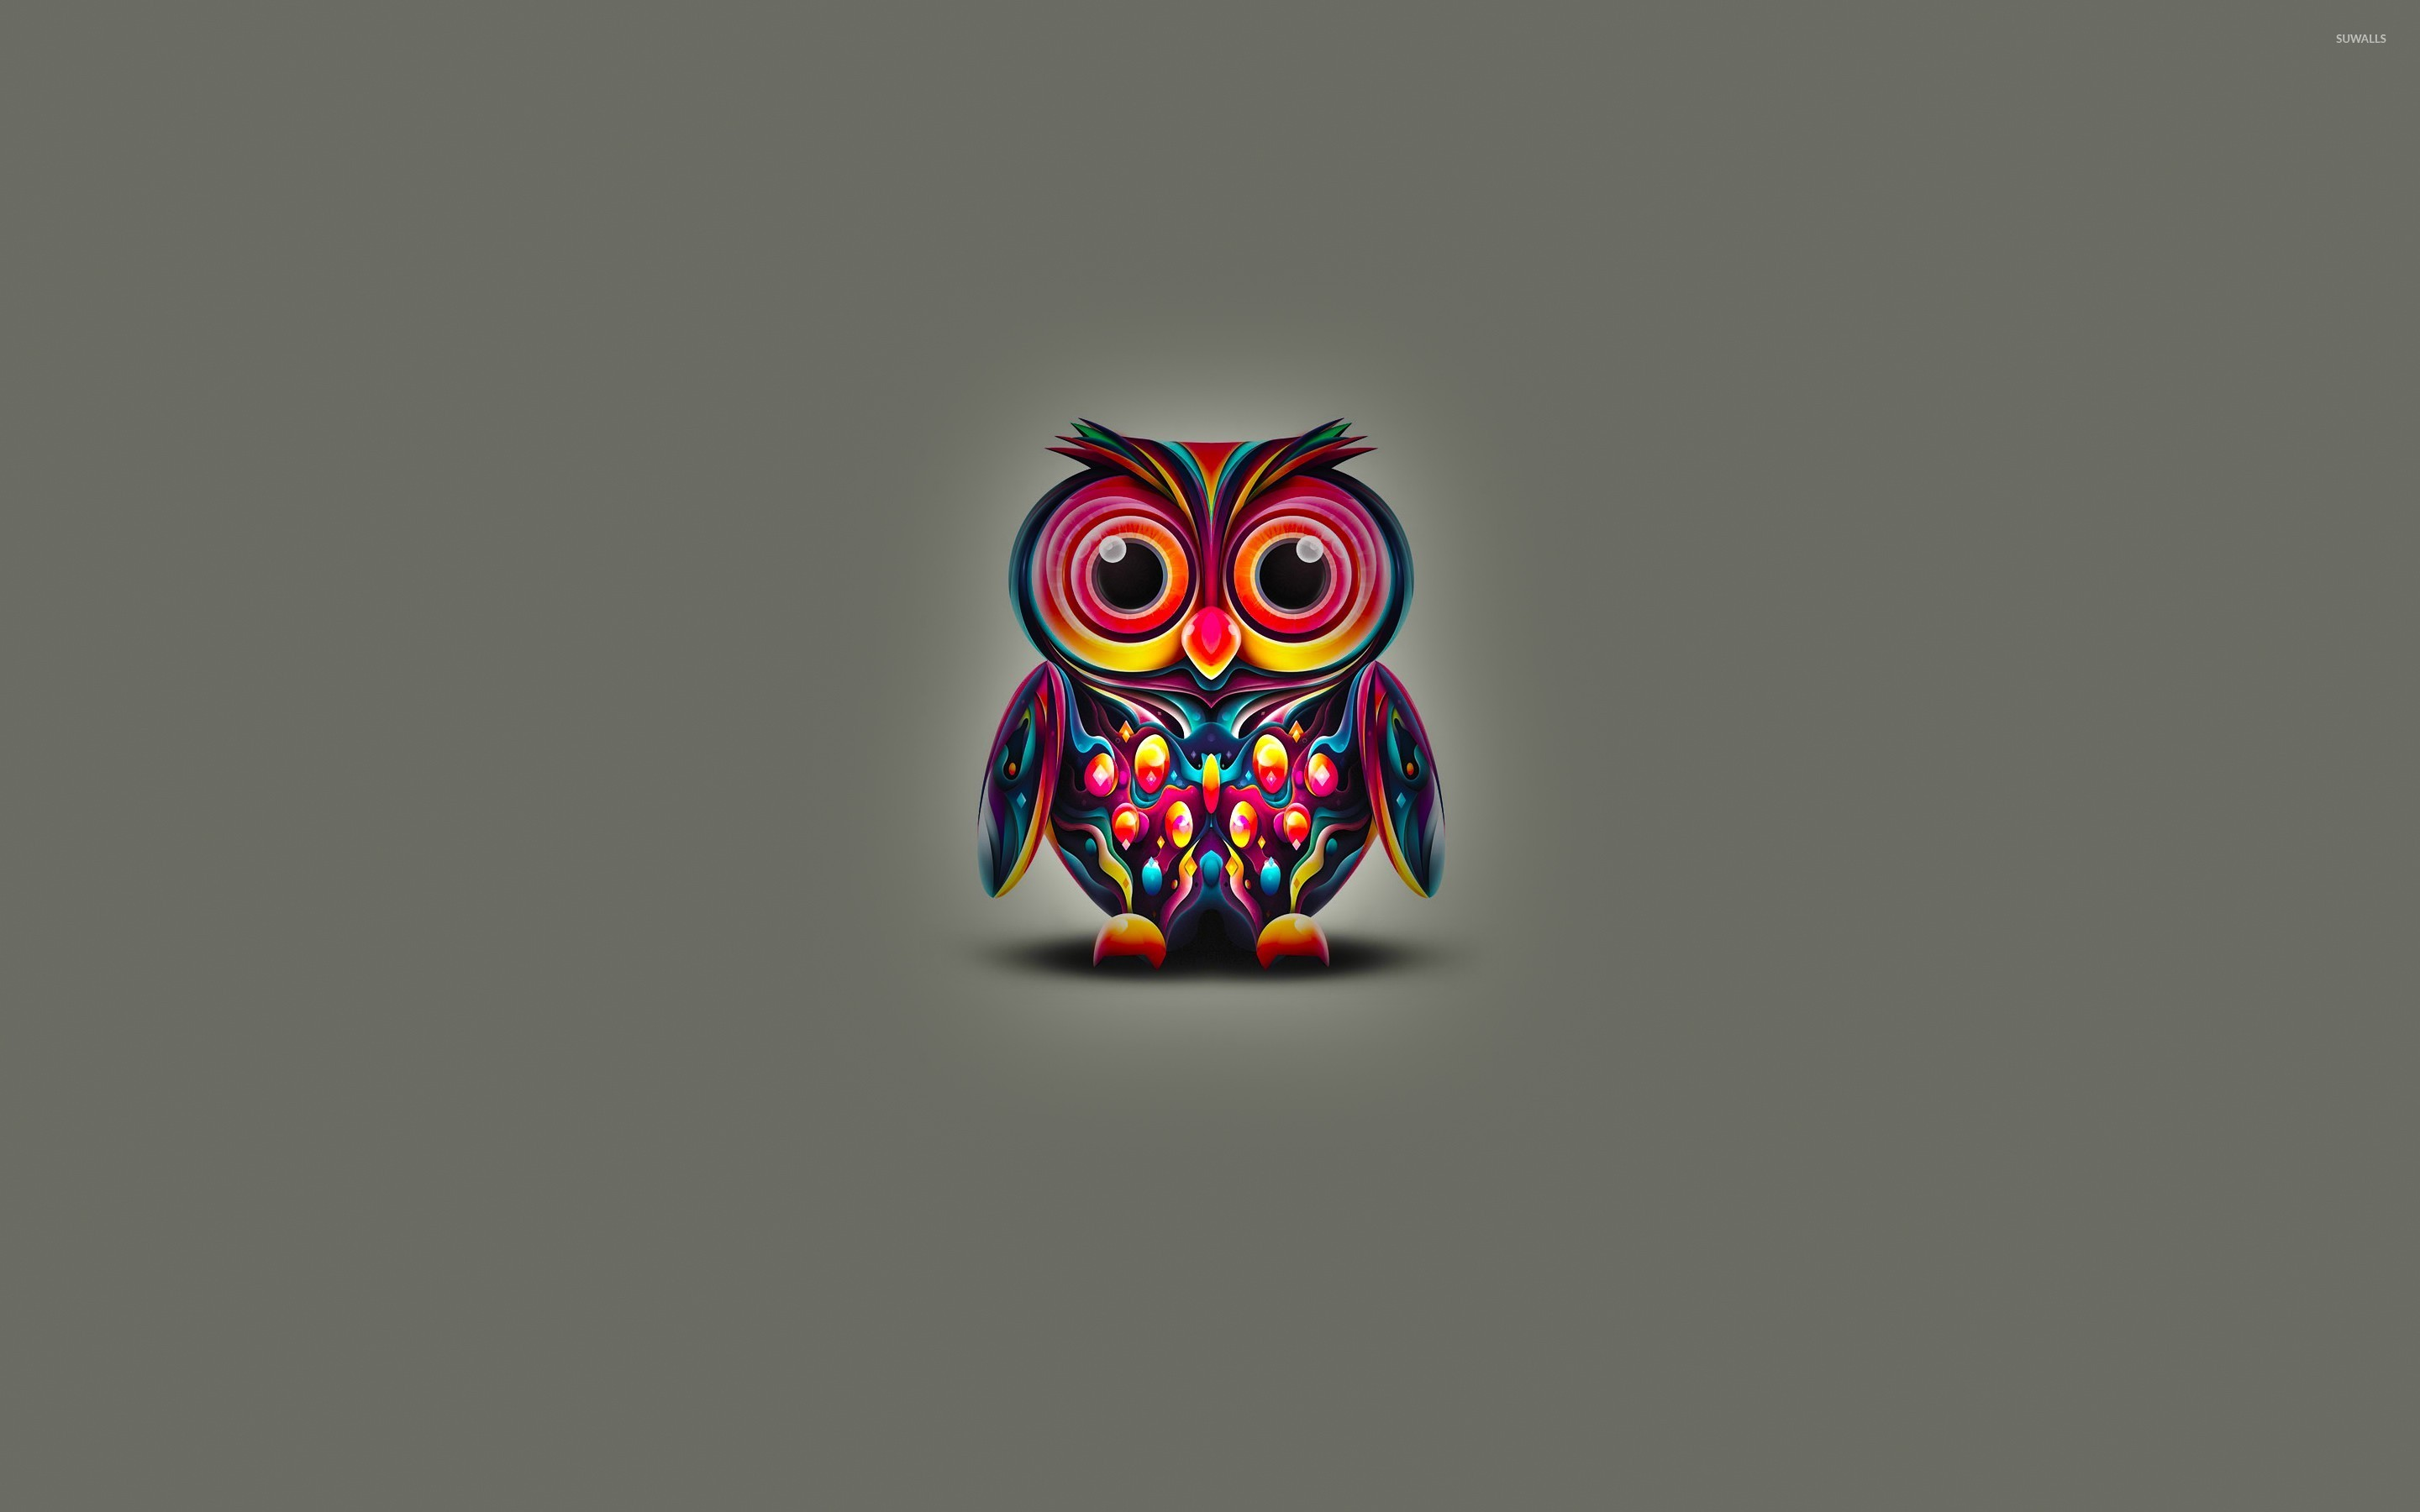 Cute owl with colorful bright feathers wallpaper digital art cute owl with colorful bright feathers wallpaper voltagebd Images